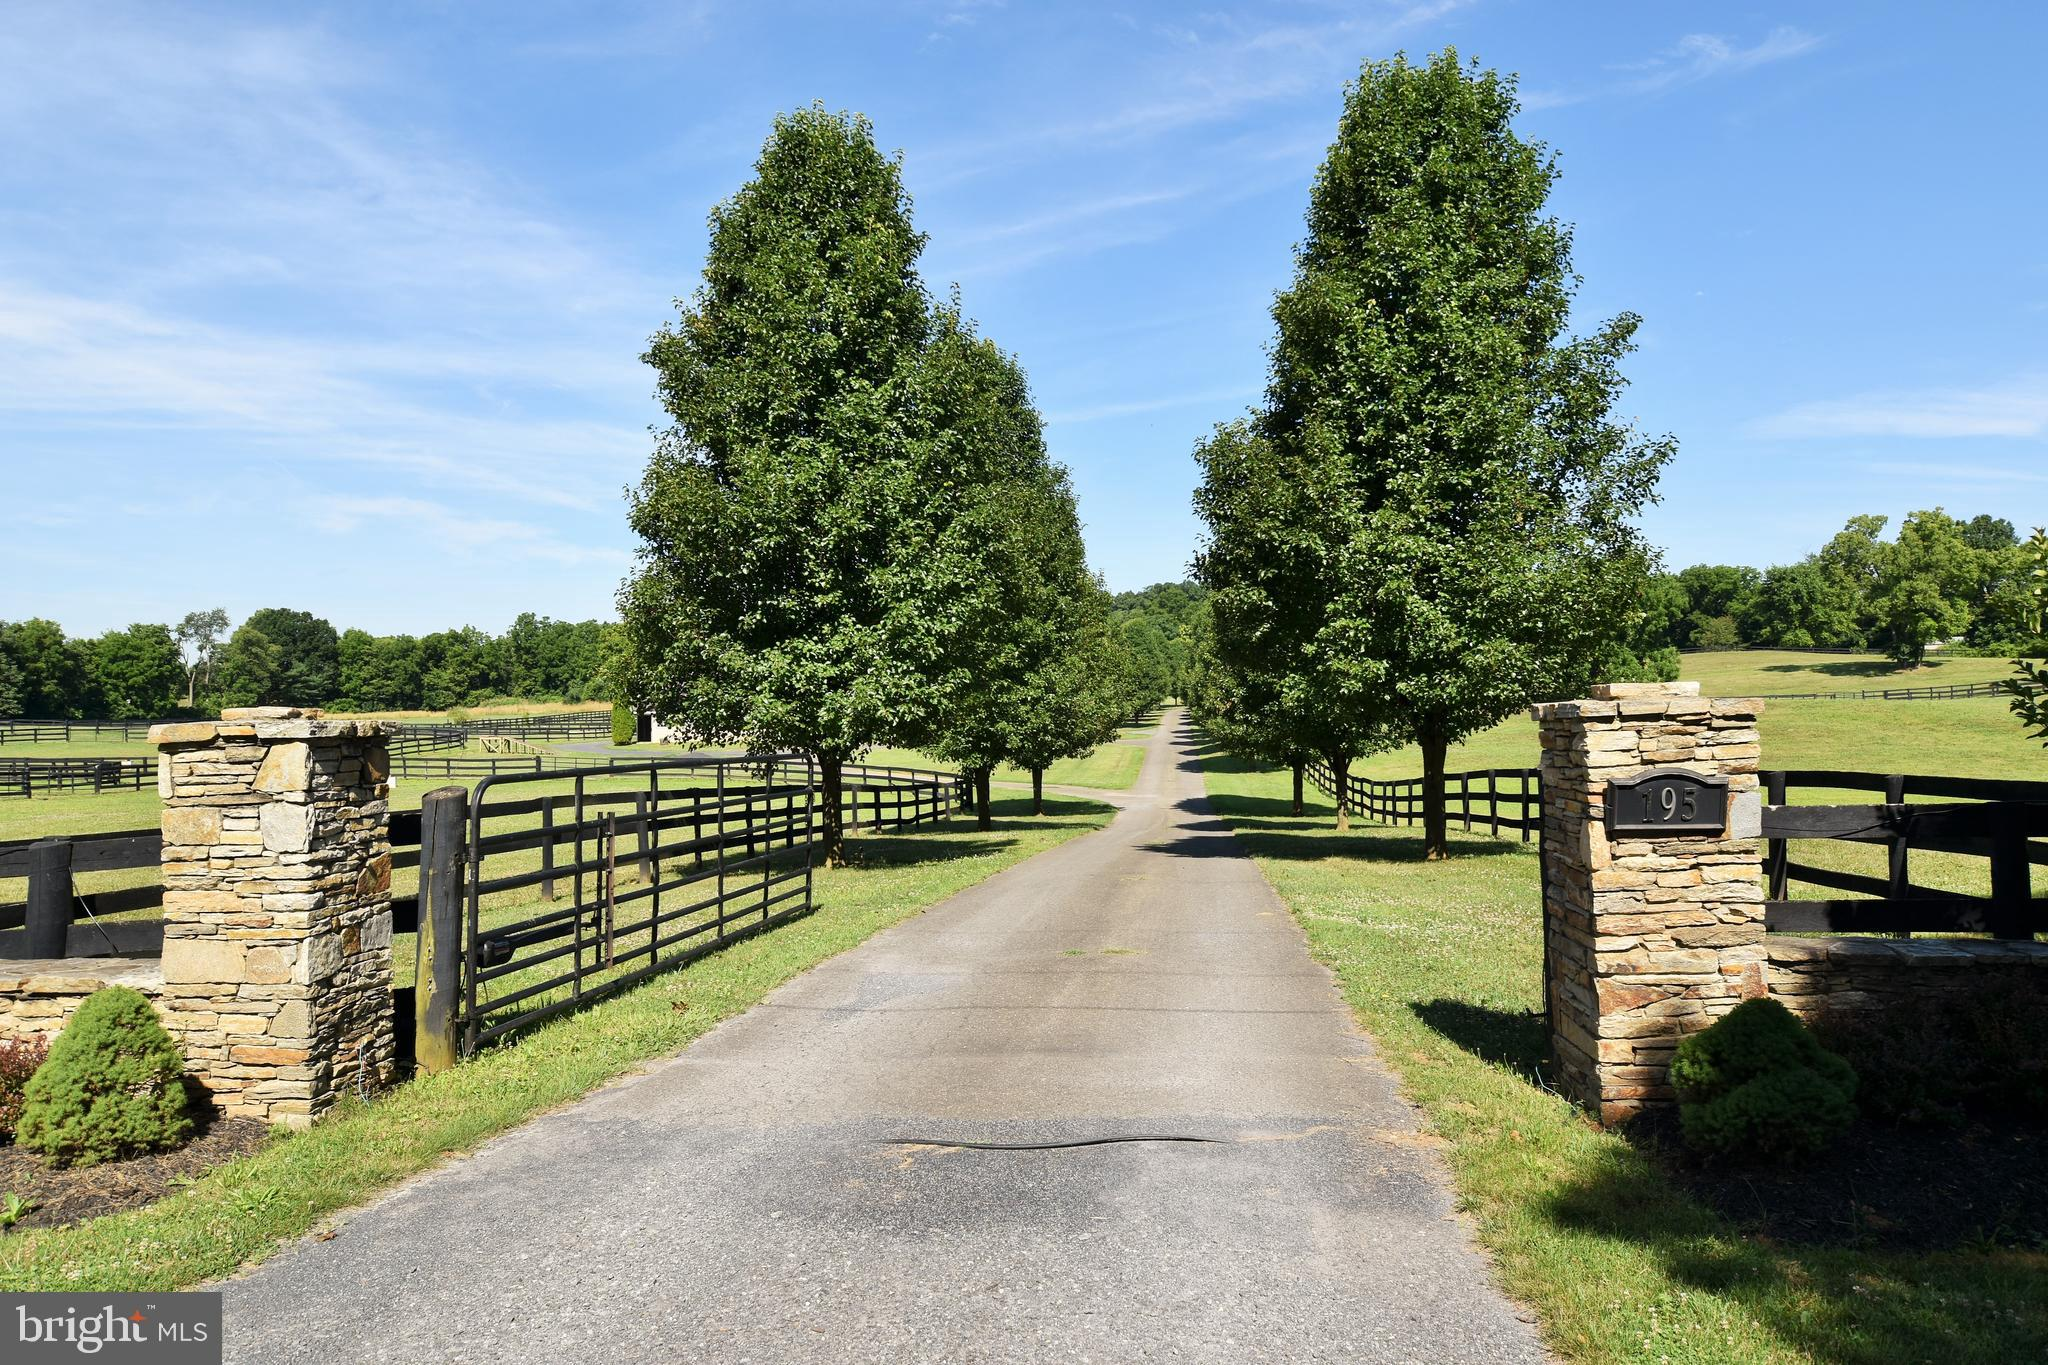 A truly spectacular gated equestrian property in the heart of the Blue Ridge Hunt Country for you and your horses located in the gorgeous countryside in Clarke County, Virginia.  5 bedroom, 4.5 bath Colonial home and horse facility that is located on 22+ acres with a 10-stall Belmont style horse barn/stable with tack/feed rooms/wash stall, hay storage, black board fenced pastures and paddocks, automatic waterers in 9 paddocks, sand riding arena. The home has 3 finished levels with just under 4000 square feet of living space with an in-law suite on lower level with bedroom, 2nd kitchen and full bath. Master bedroom suite has sitting room with wet bar. Hardwood floors throughout the main level, 2-story foyer, island kitchen and breakfast room with granite counters and stainless appliances. Gated entry with tree lined driveway through the property, a spectacularly gorgeous place to call home.  Just off Route 50 for easy commuting.